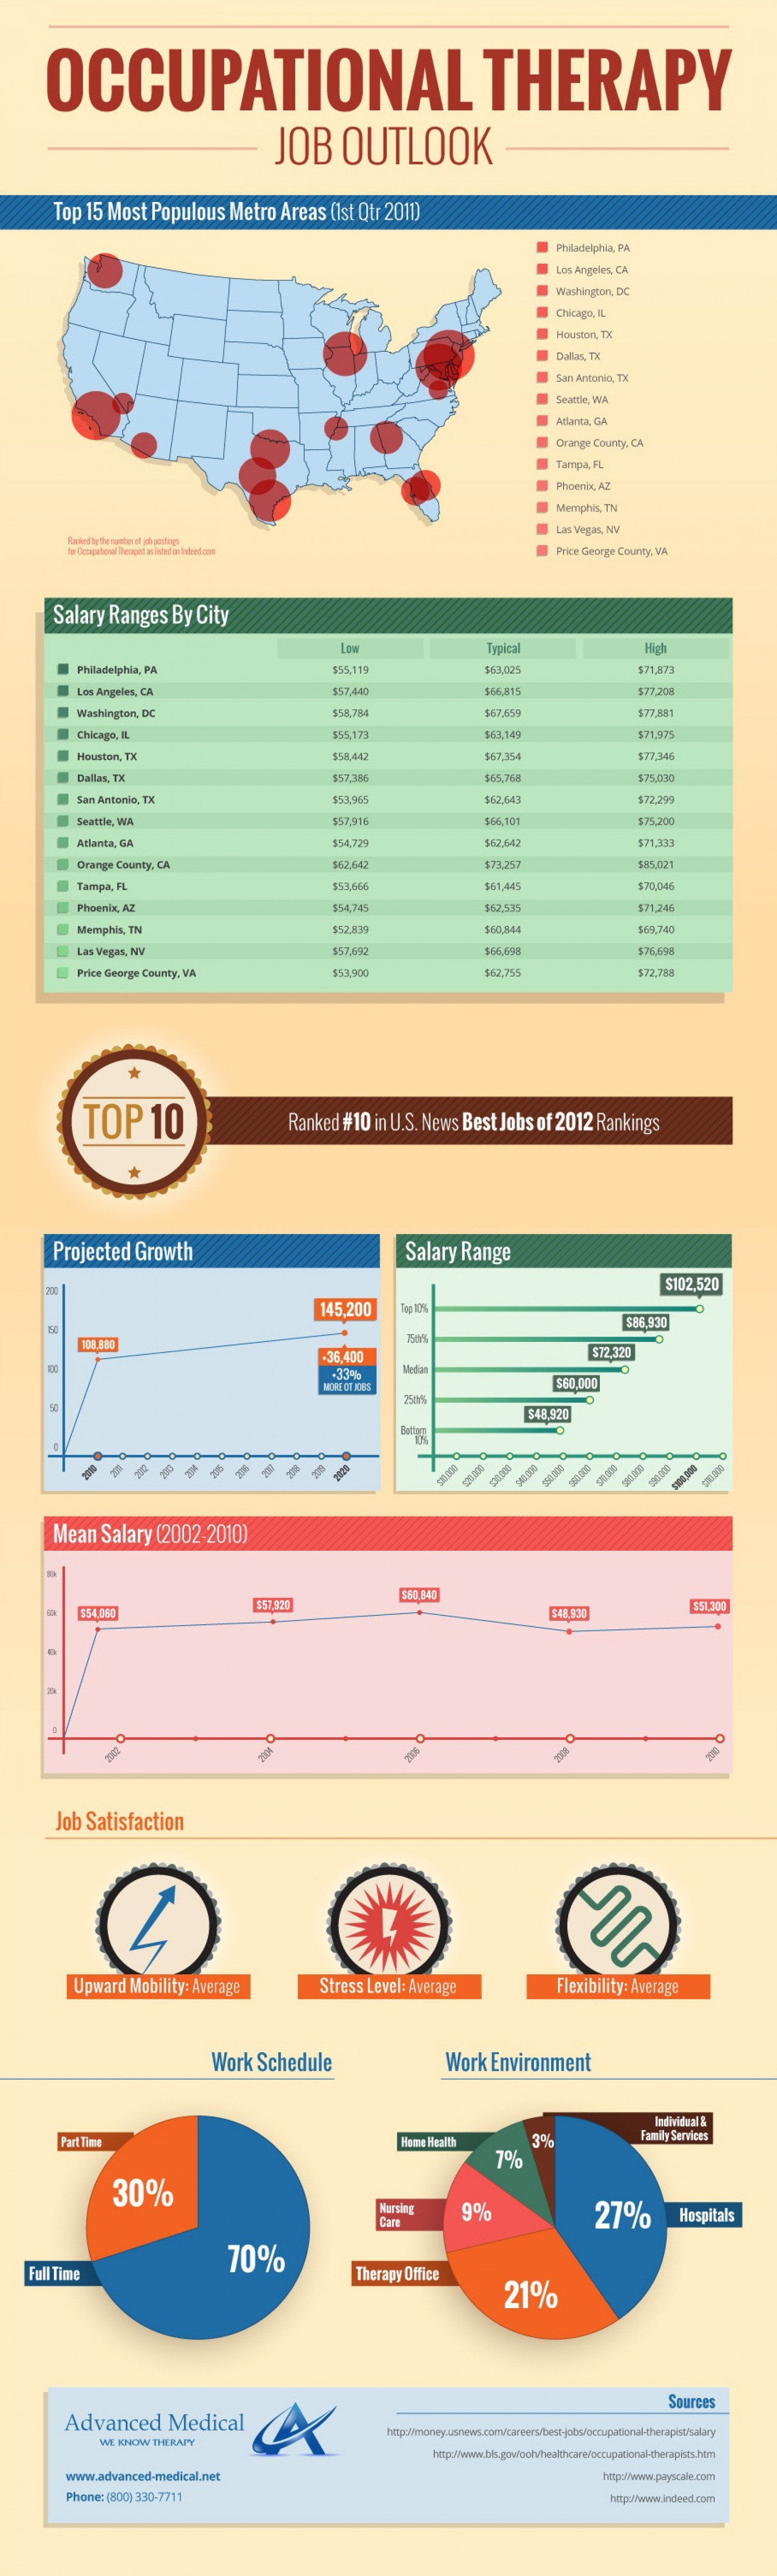 Occupational Therapist Job Outlook Infographic